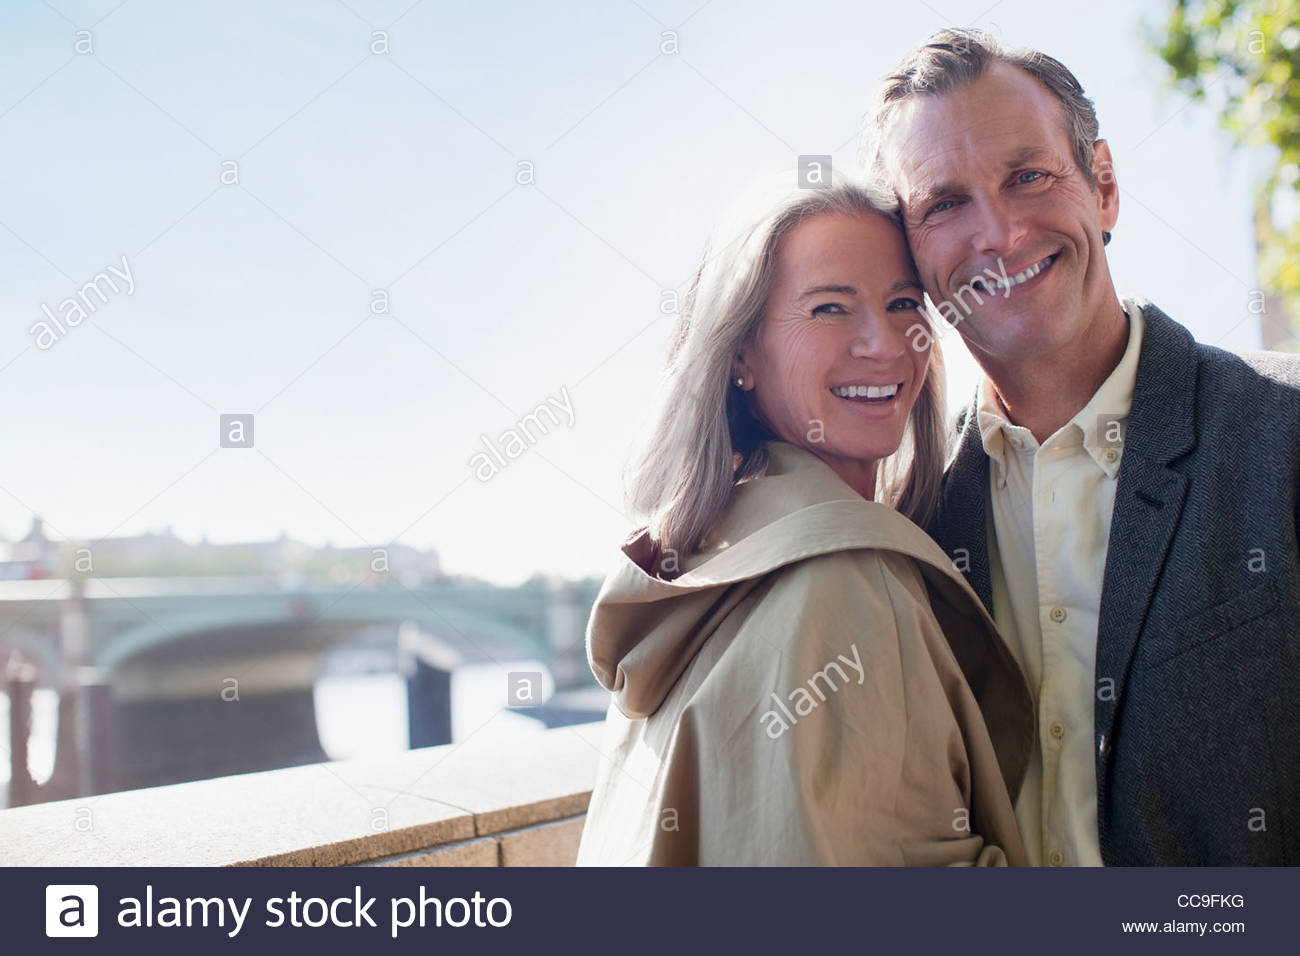 Portrait of smiling couple - Stock Image